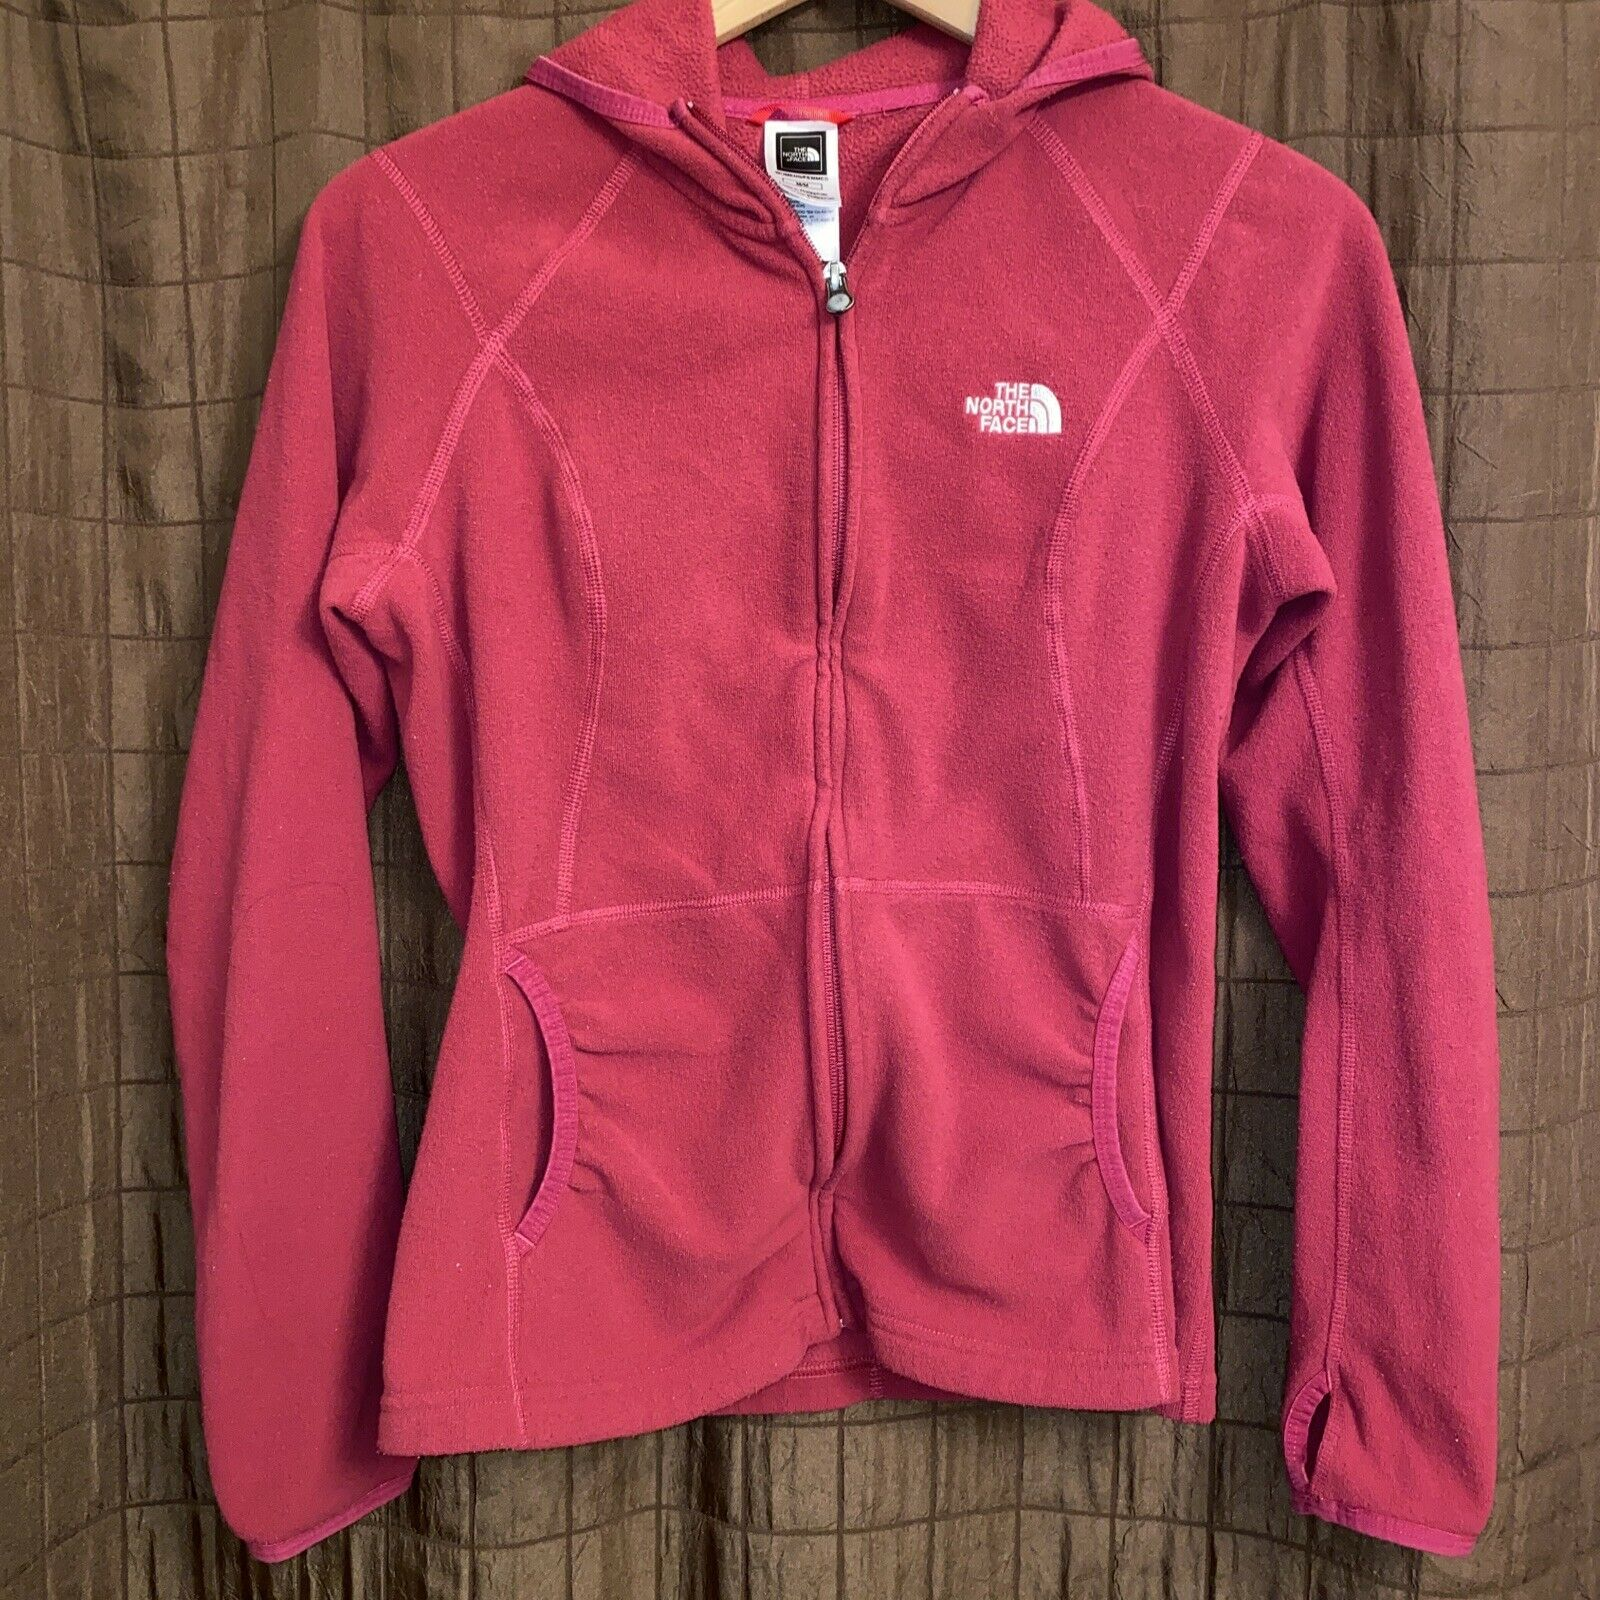 North Face Zip Up Hoodie Jacket Fitted Women's Medium Cranberry Red Thumb Holes